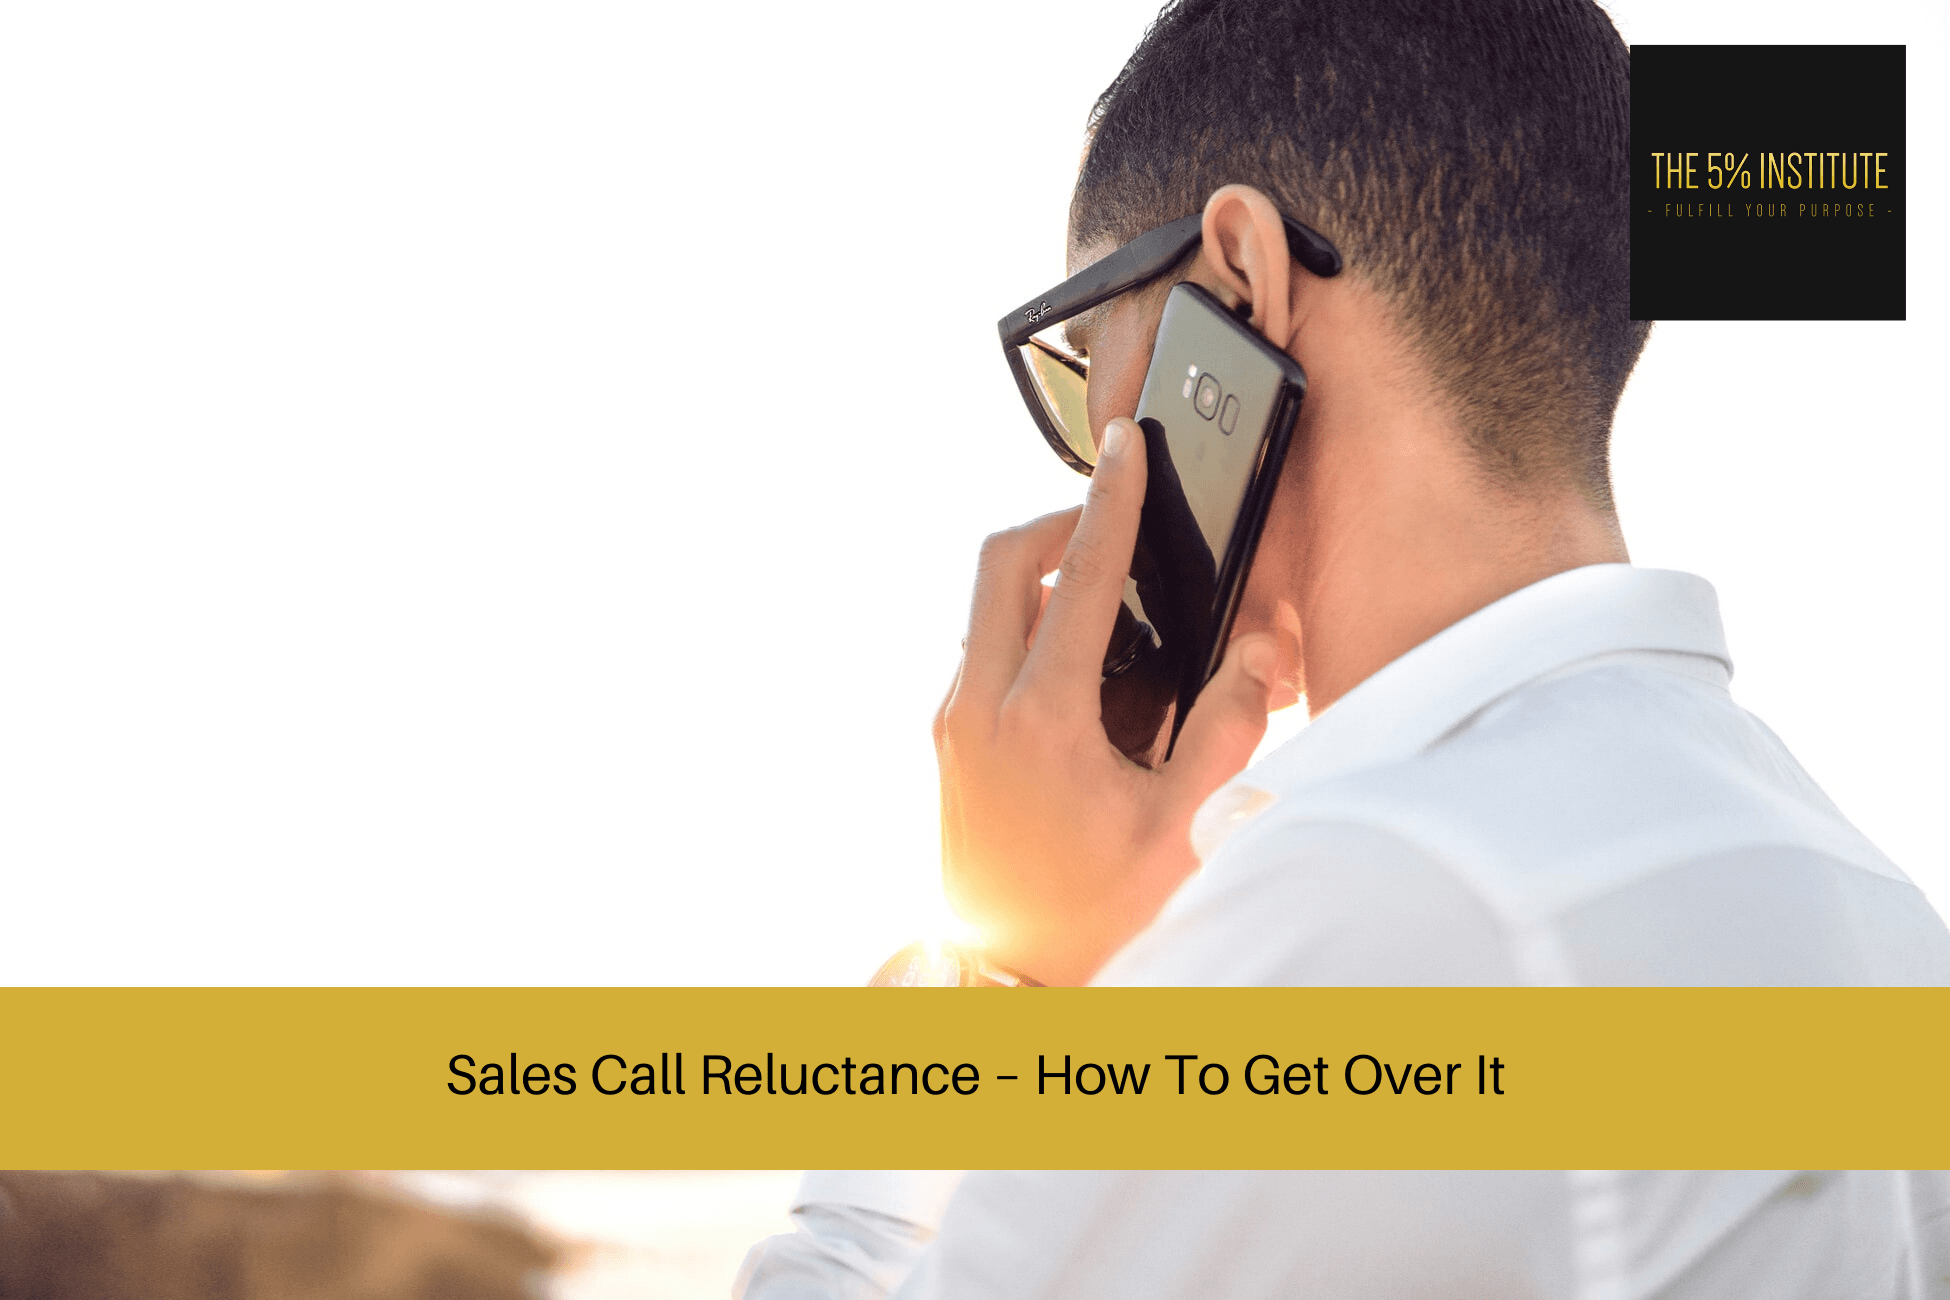 sales call reluctance